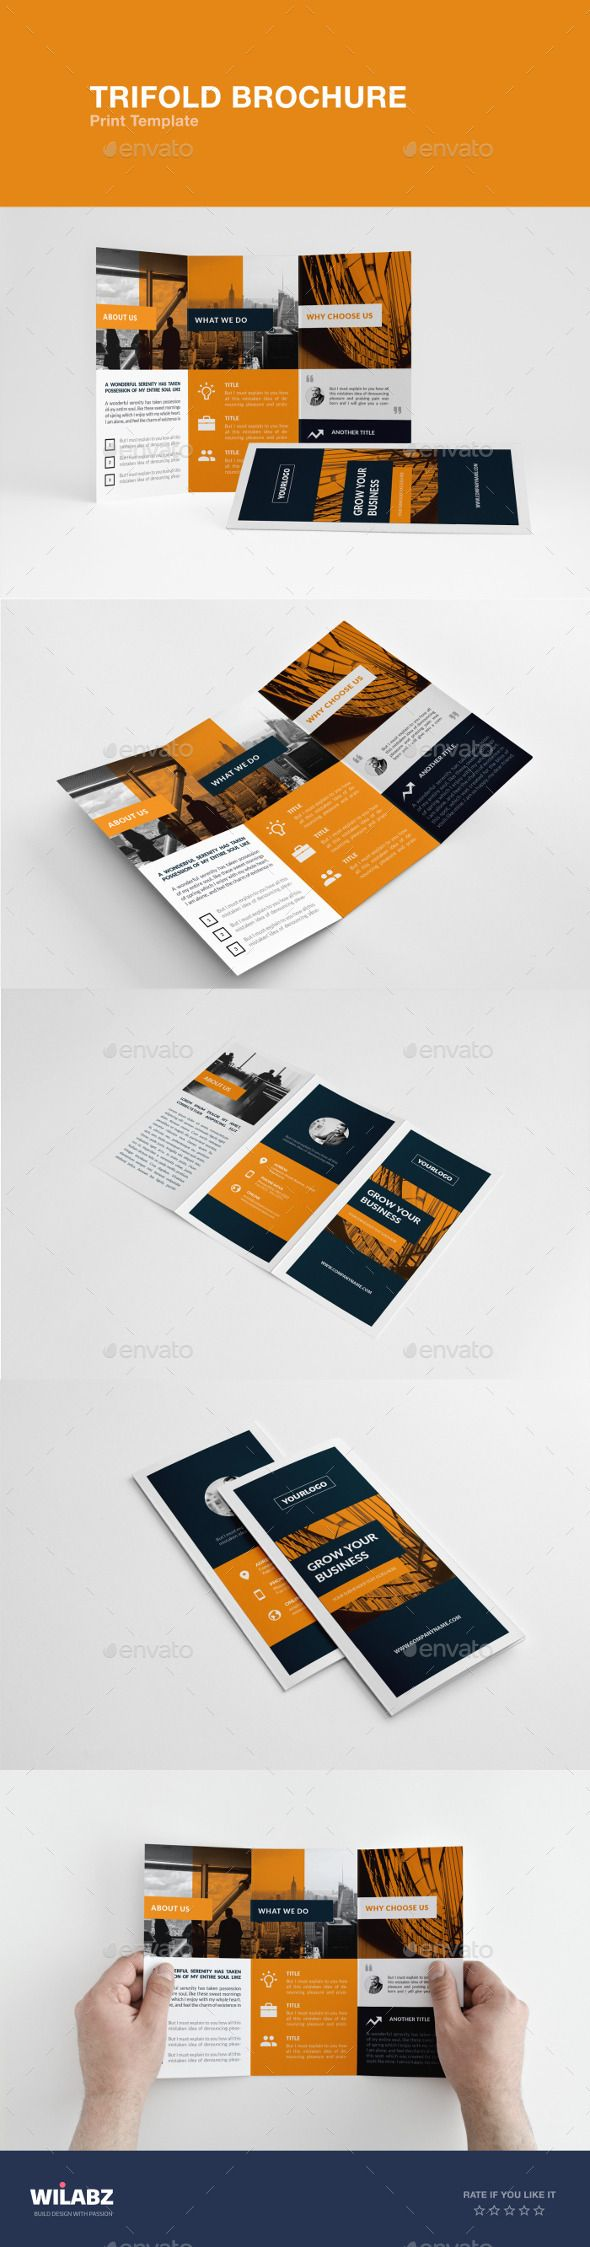 Printable tri fold brochure template